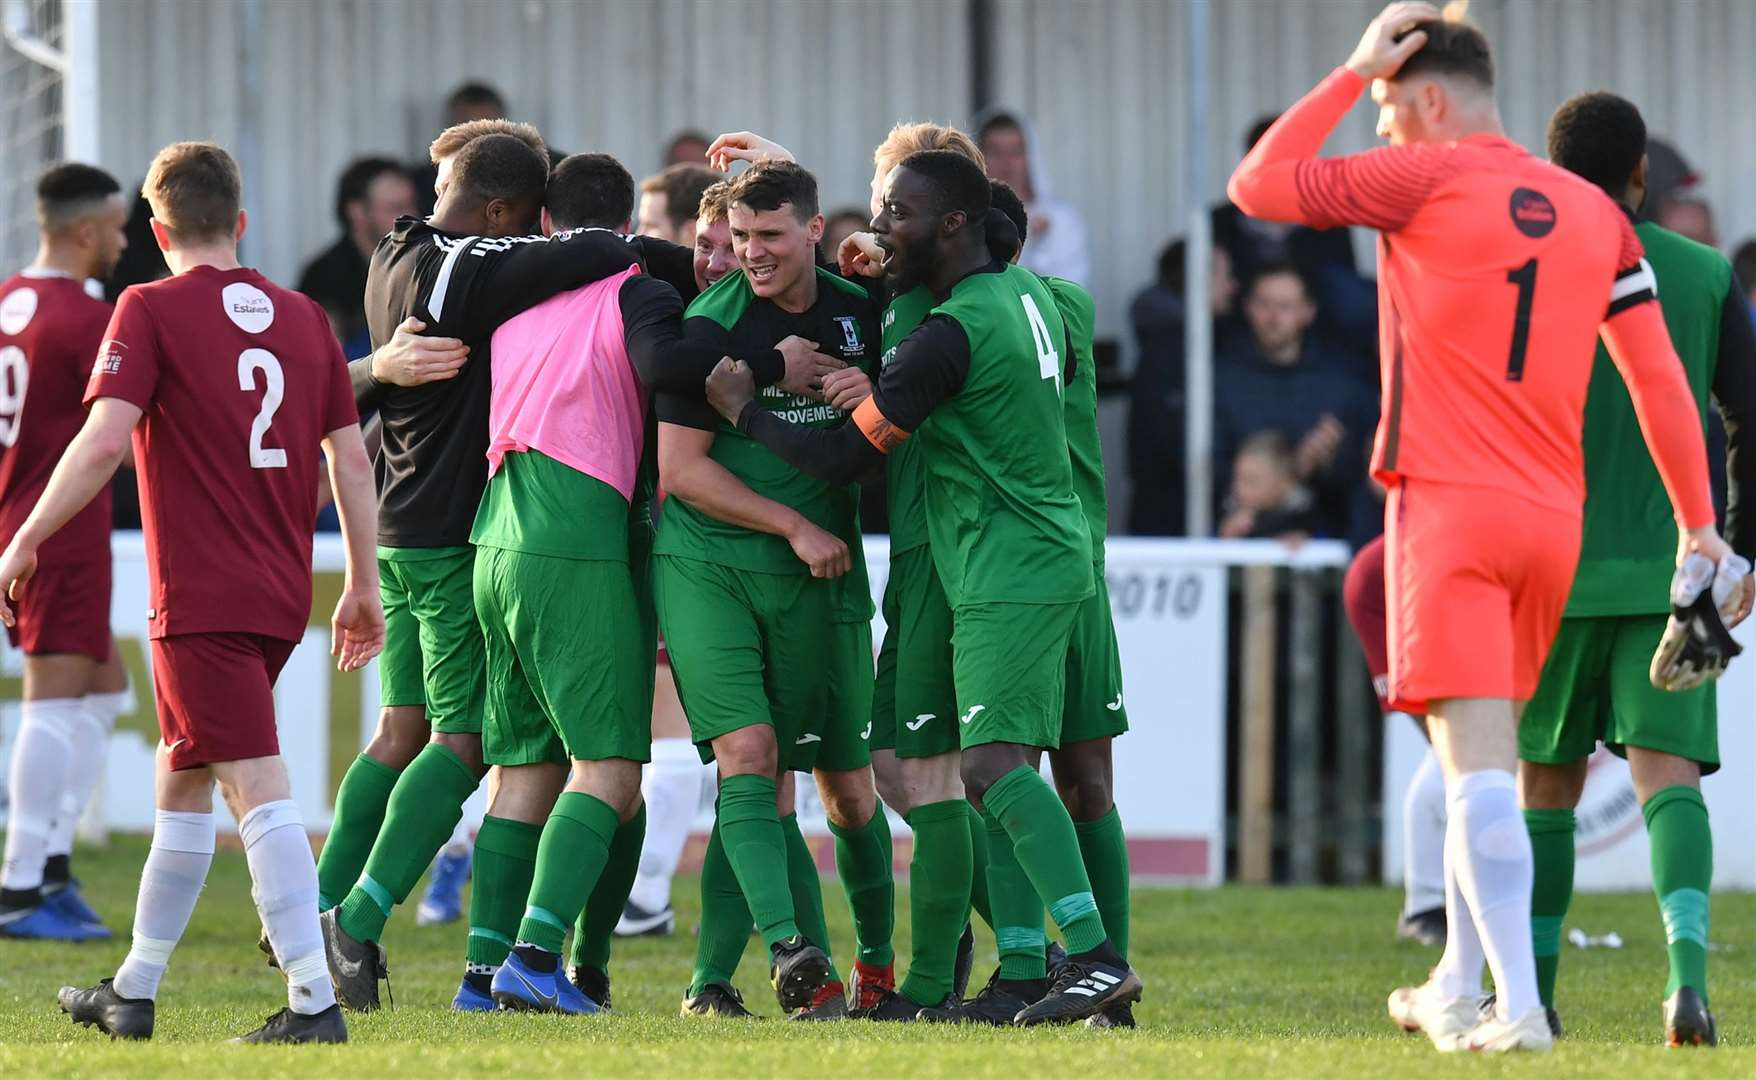 Cray Valley's players celebrate at the final whistle Picture: Keith Gillard